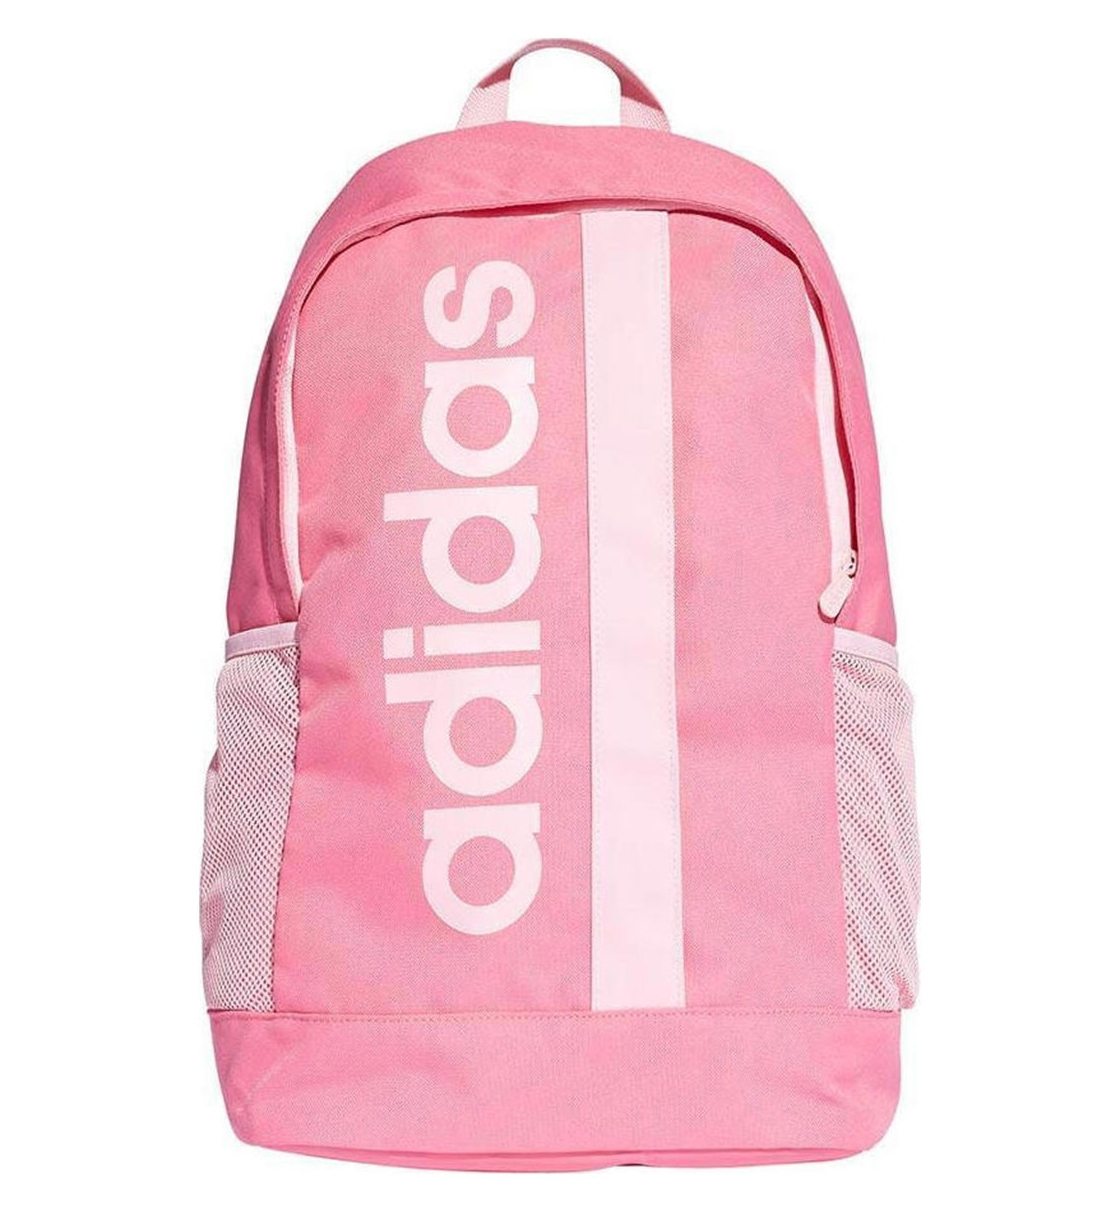 adidas Σακίδιο Πλάτης Fw19 Linear Core Backpack DT8619